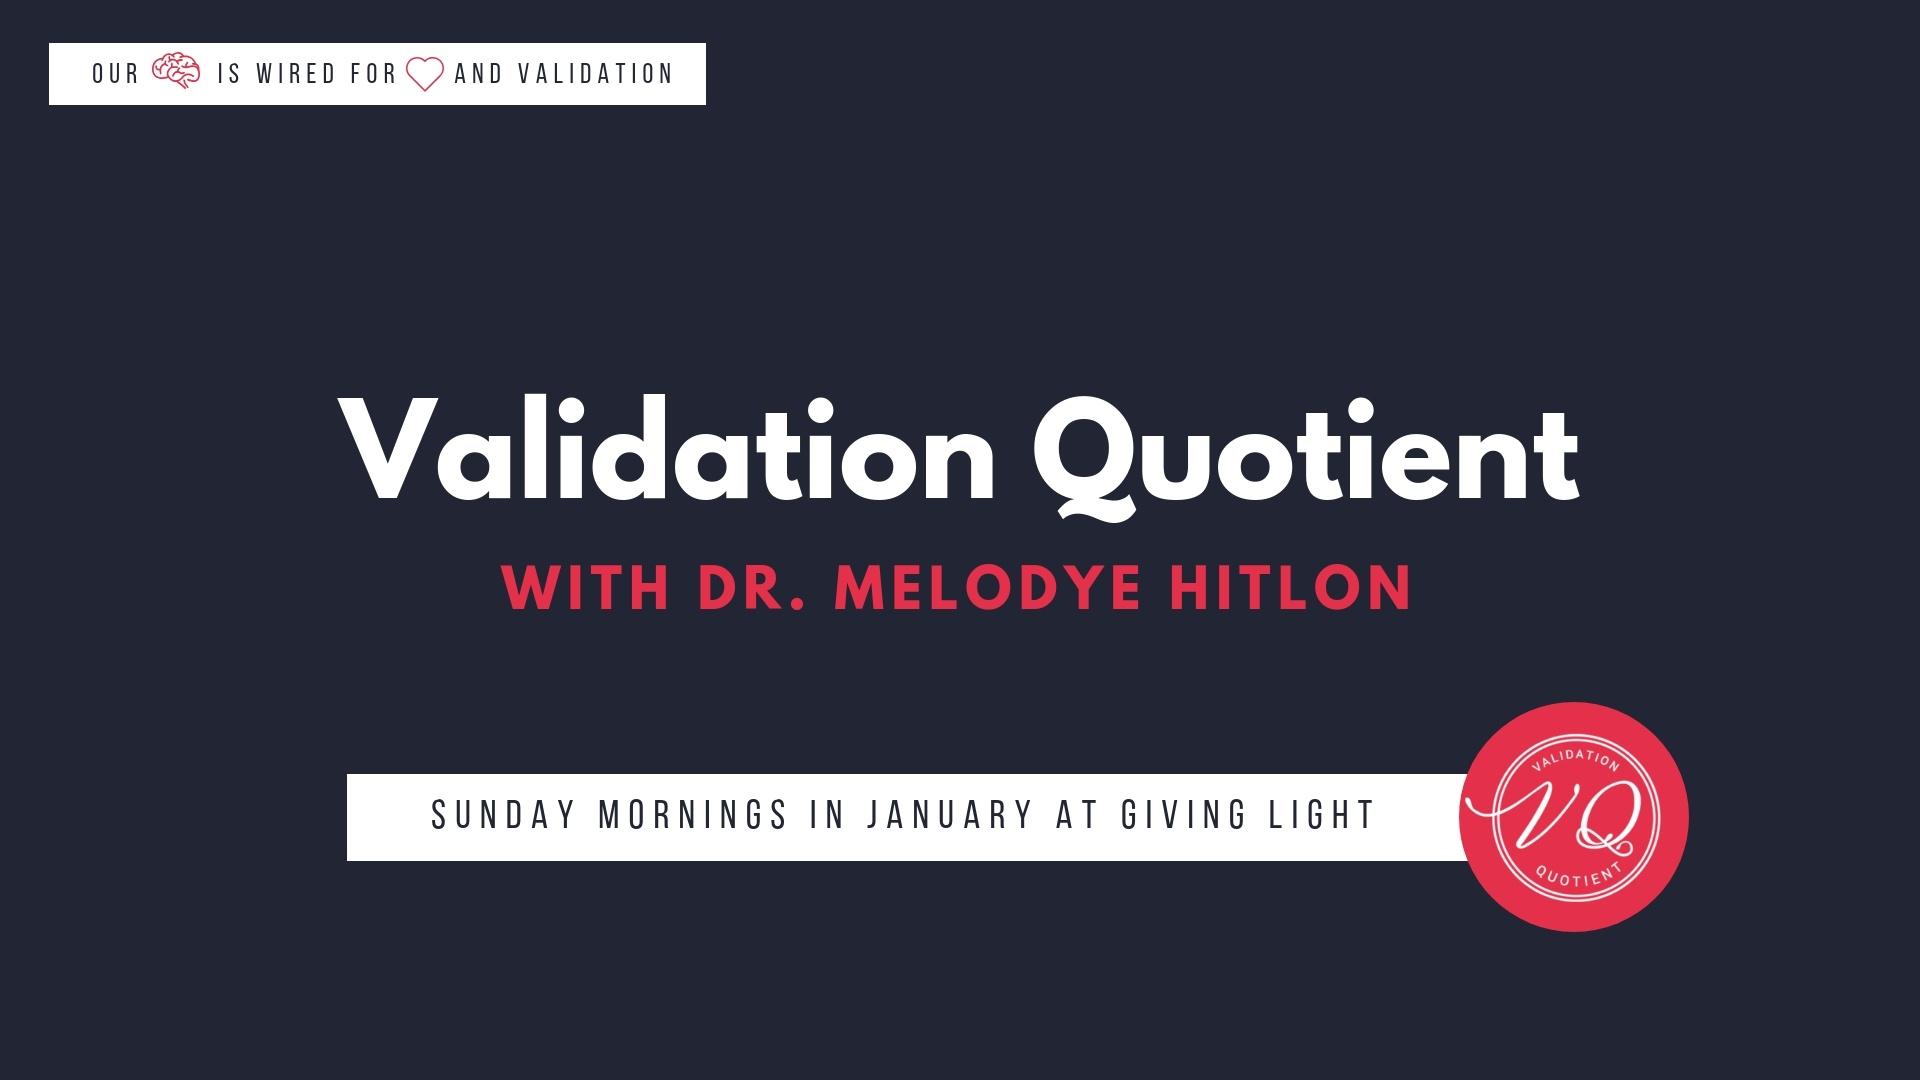 Validation Quotient Sunday Series